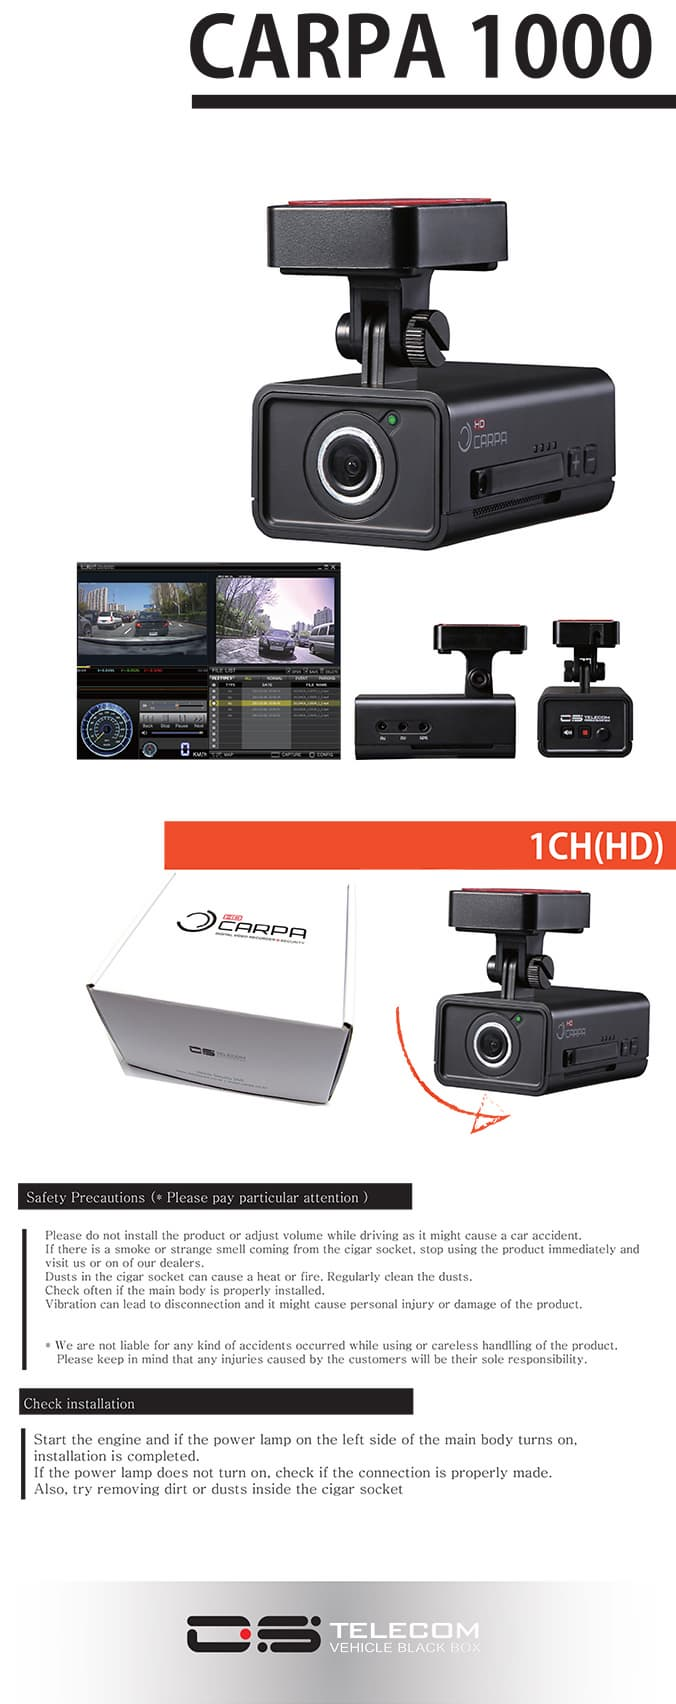 1ch HD driving gps recorder _CARPA_1000S_